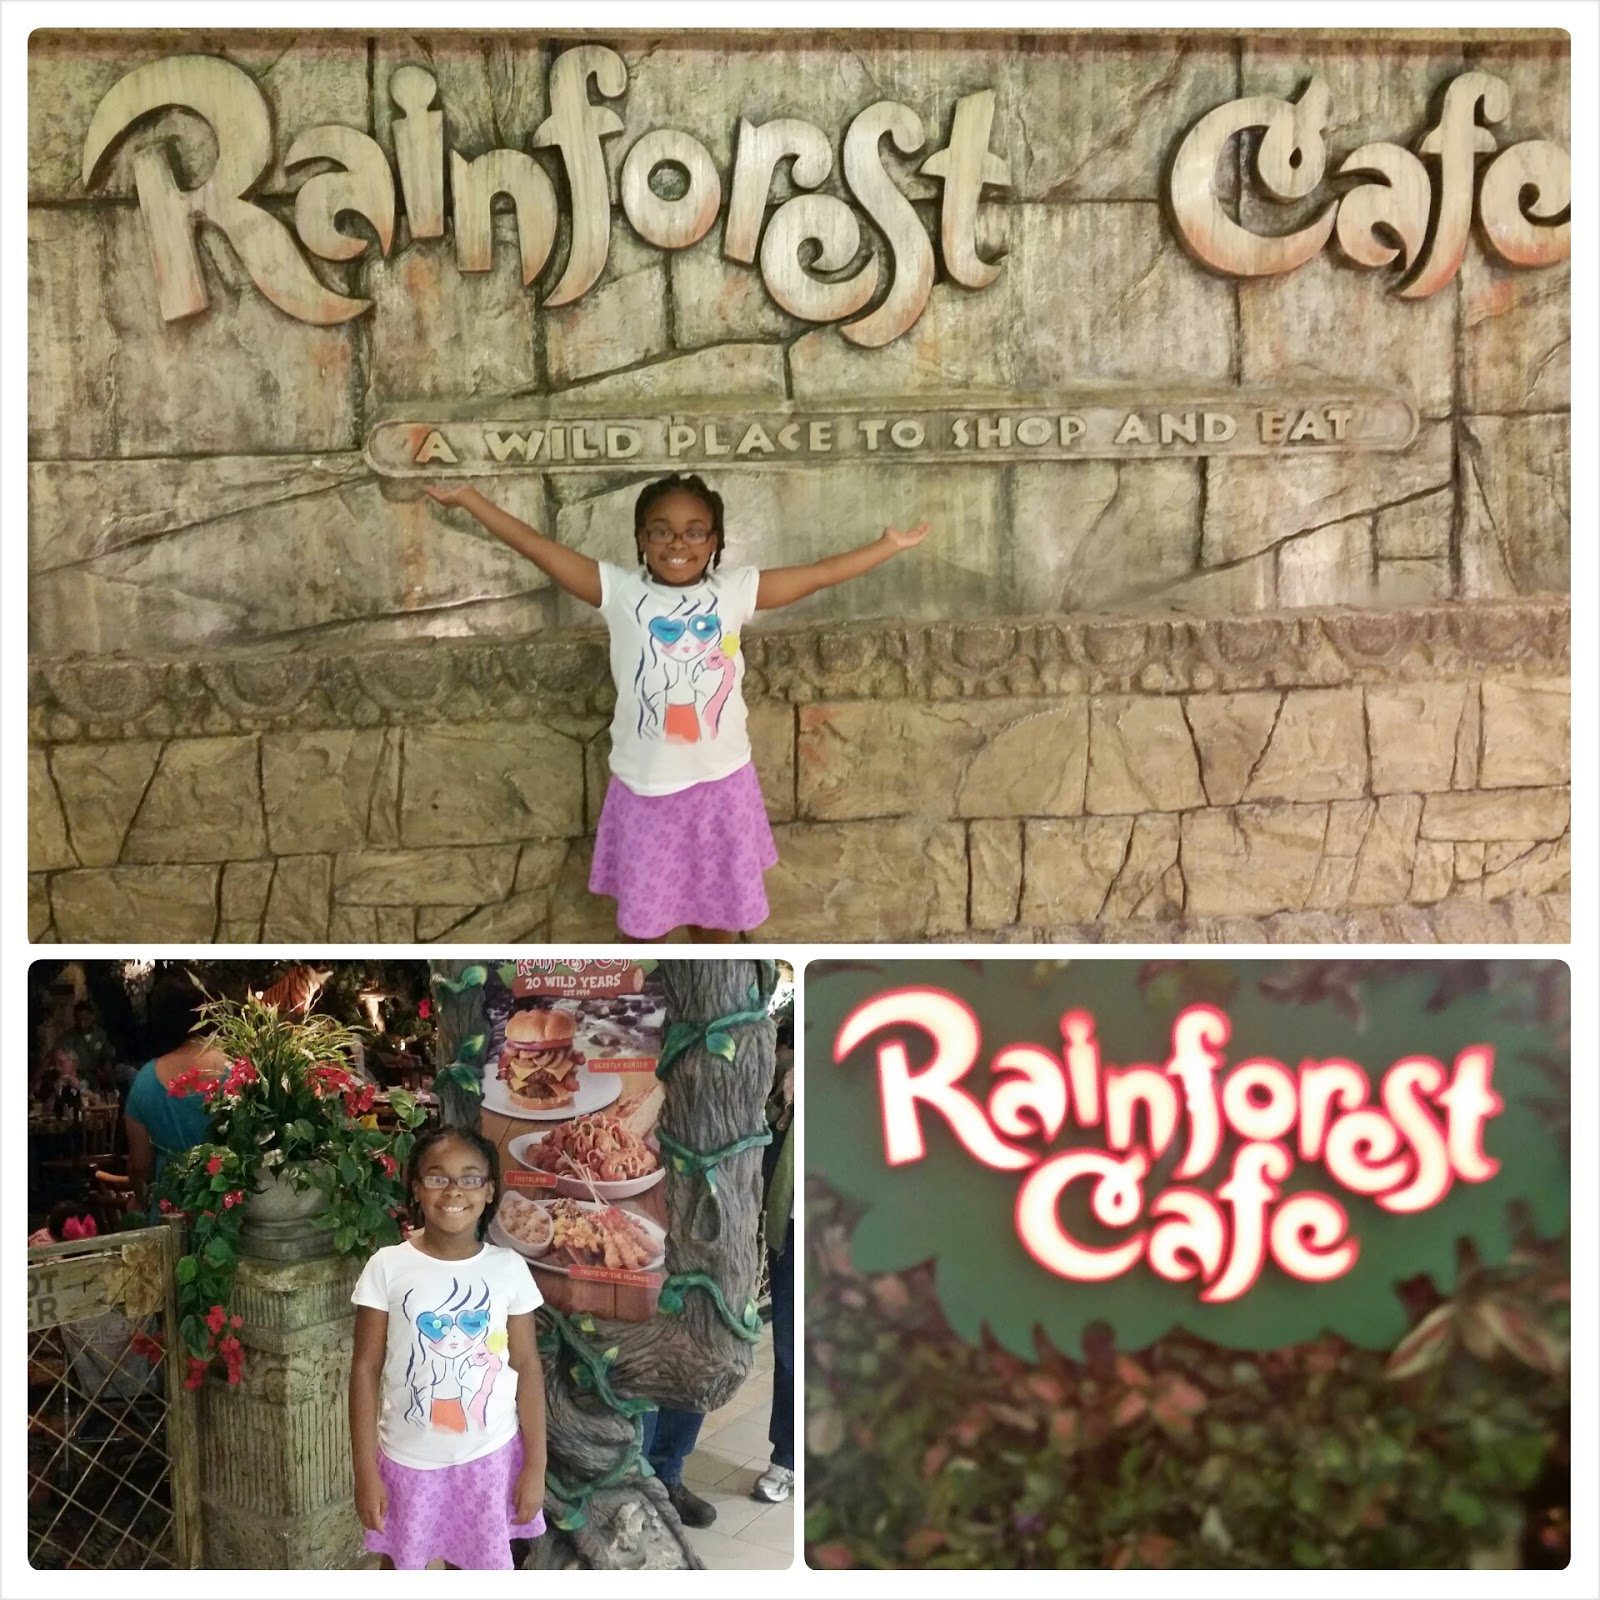 My Epic Family Road Trip Vacation! #RoadTrip #RainforestCafe via ProductReviewMom.com